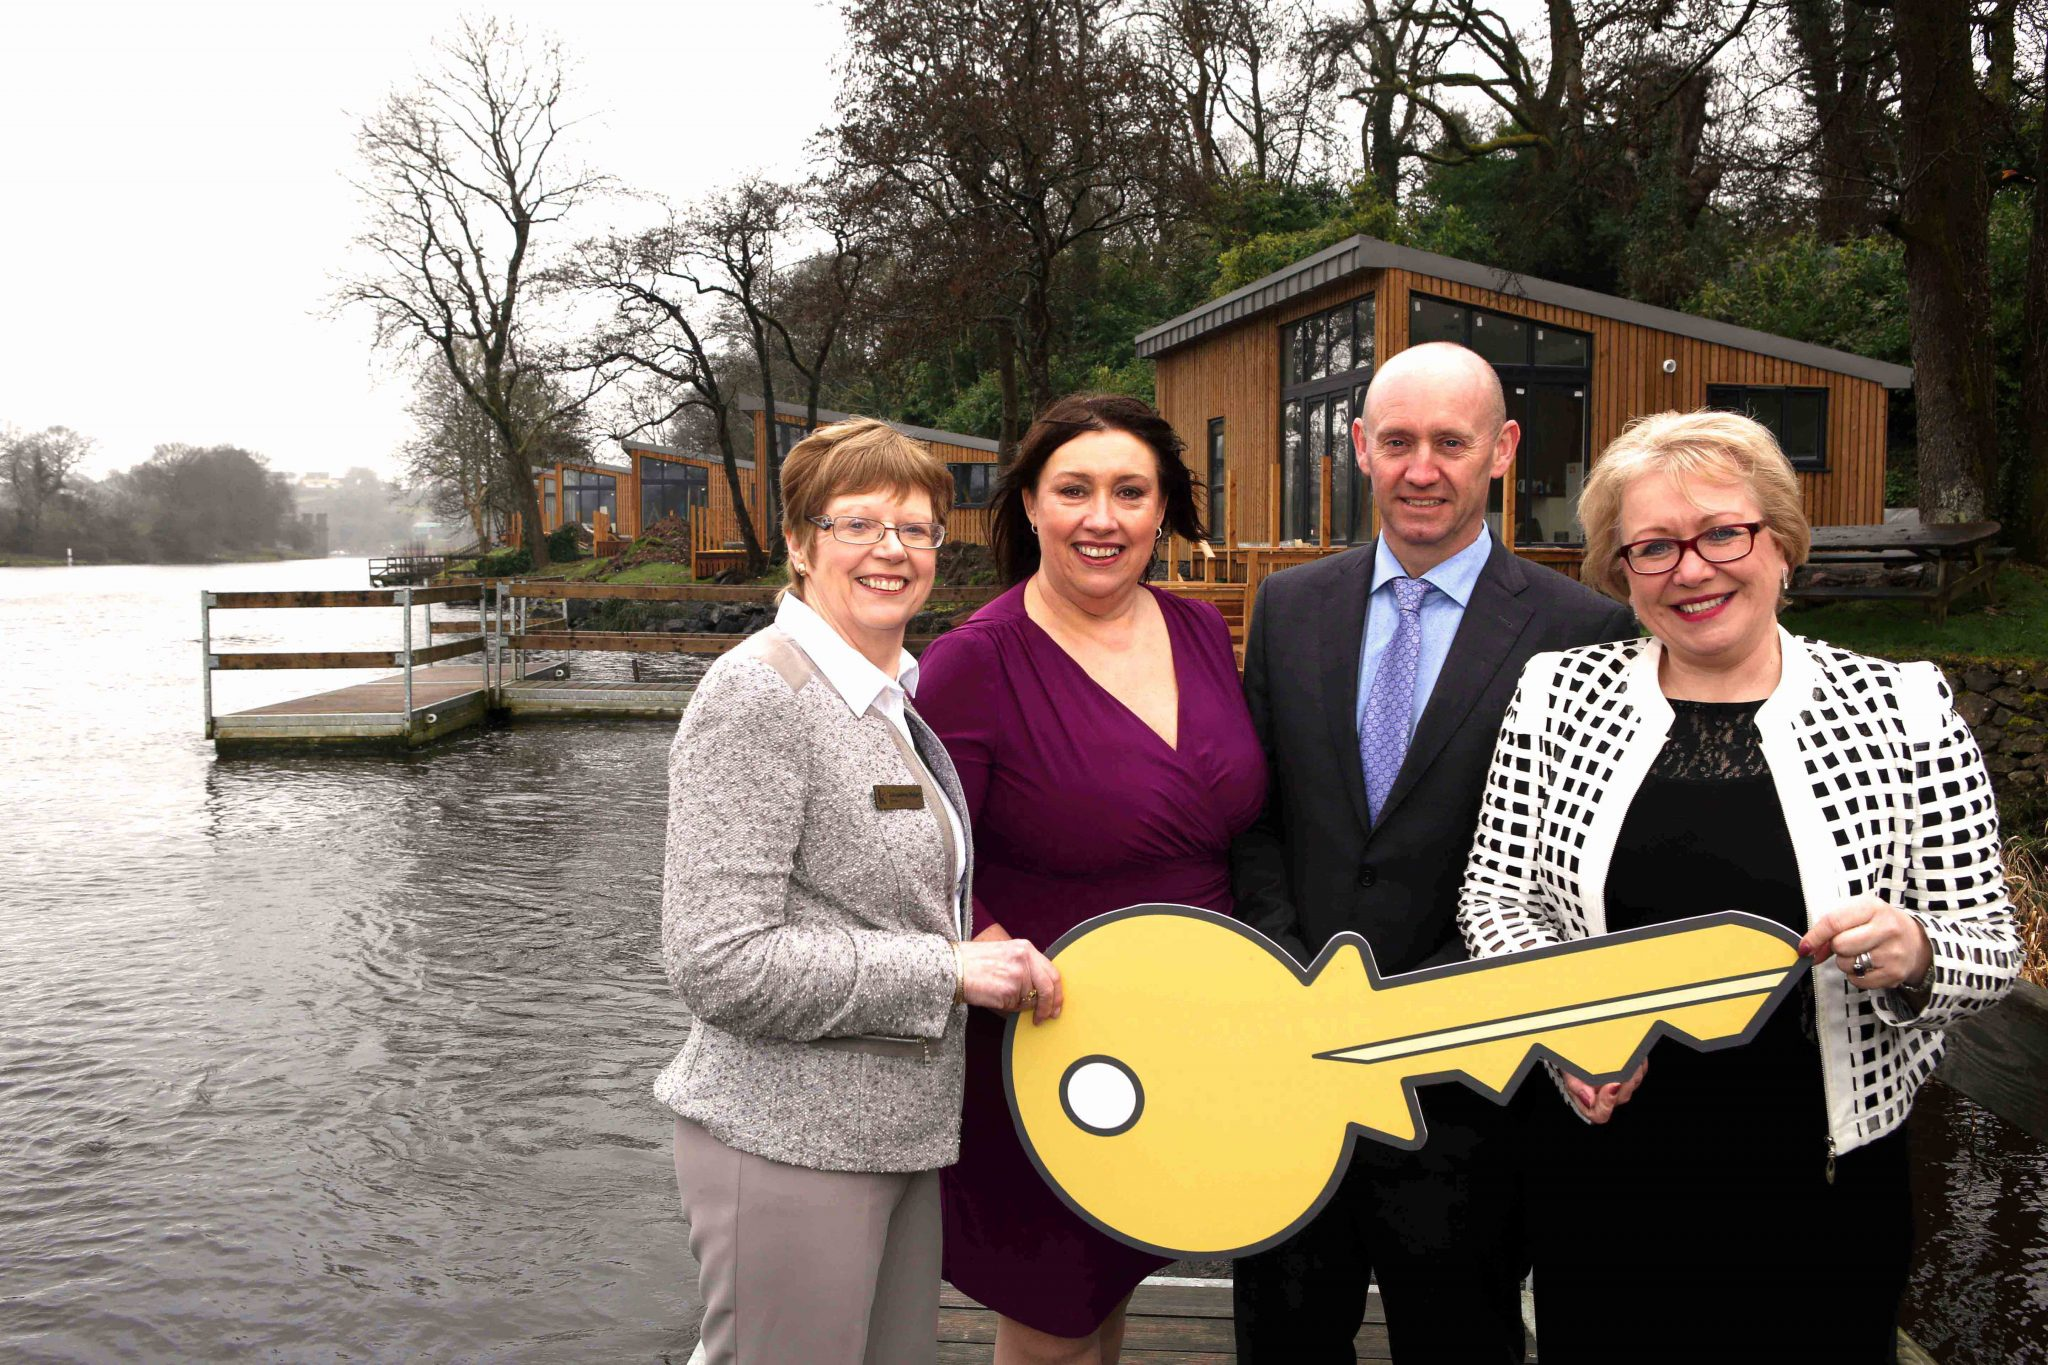 TOURISM BOOST FOR FERMANAGH AND PORTSTEWART